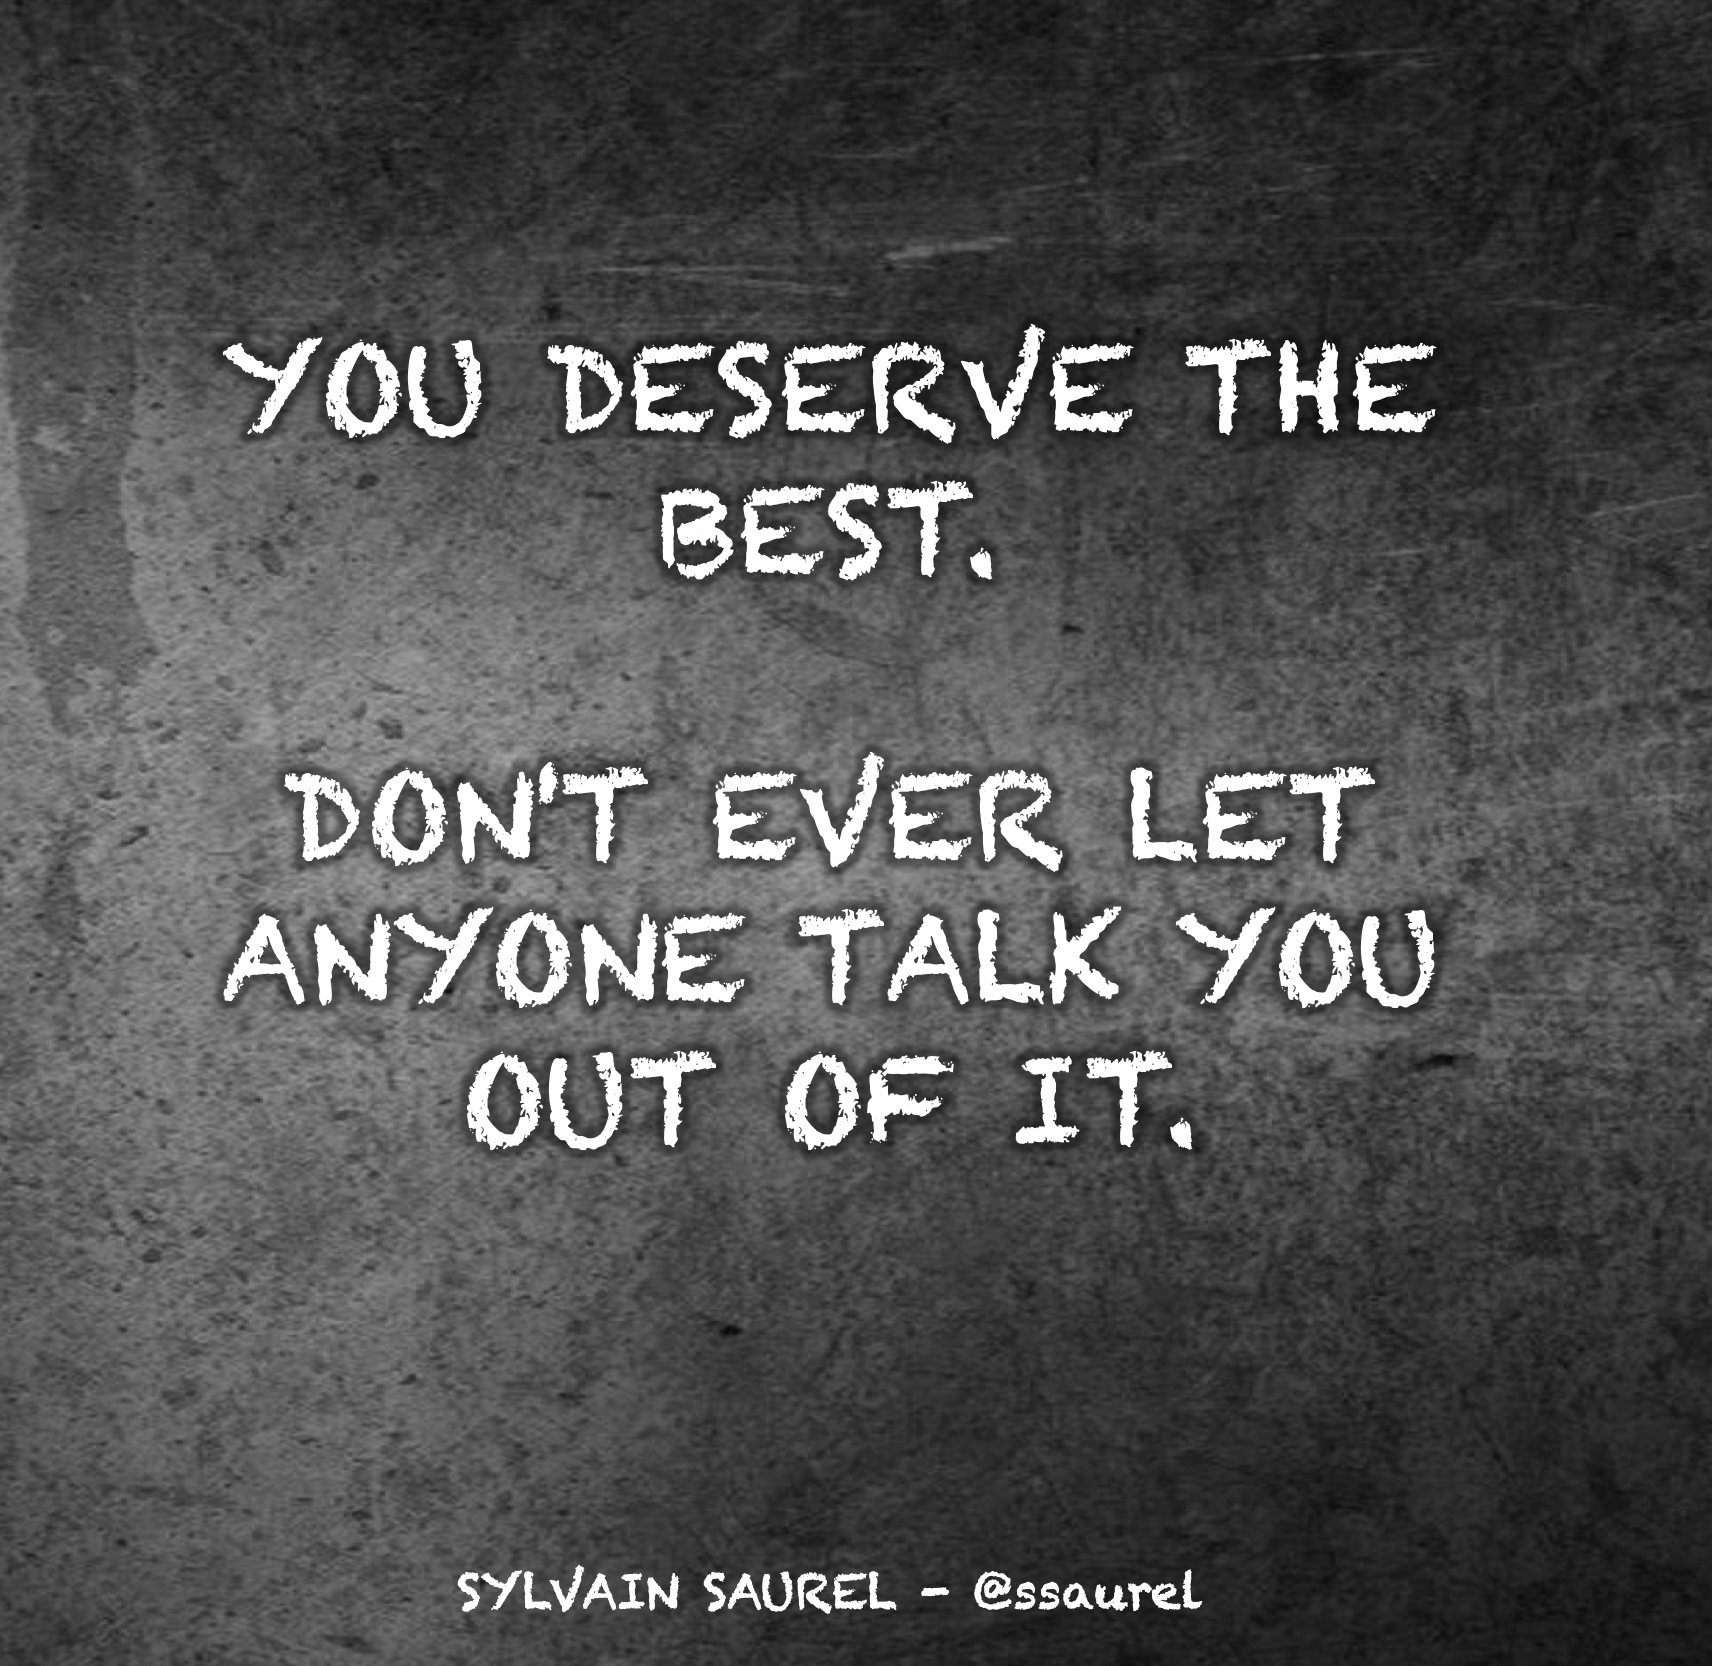 [Image] You deserve the best. Don't ever let anyone talk you out of it.